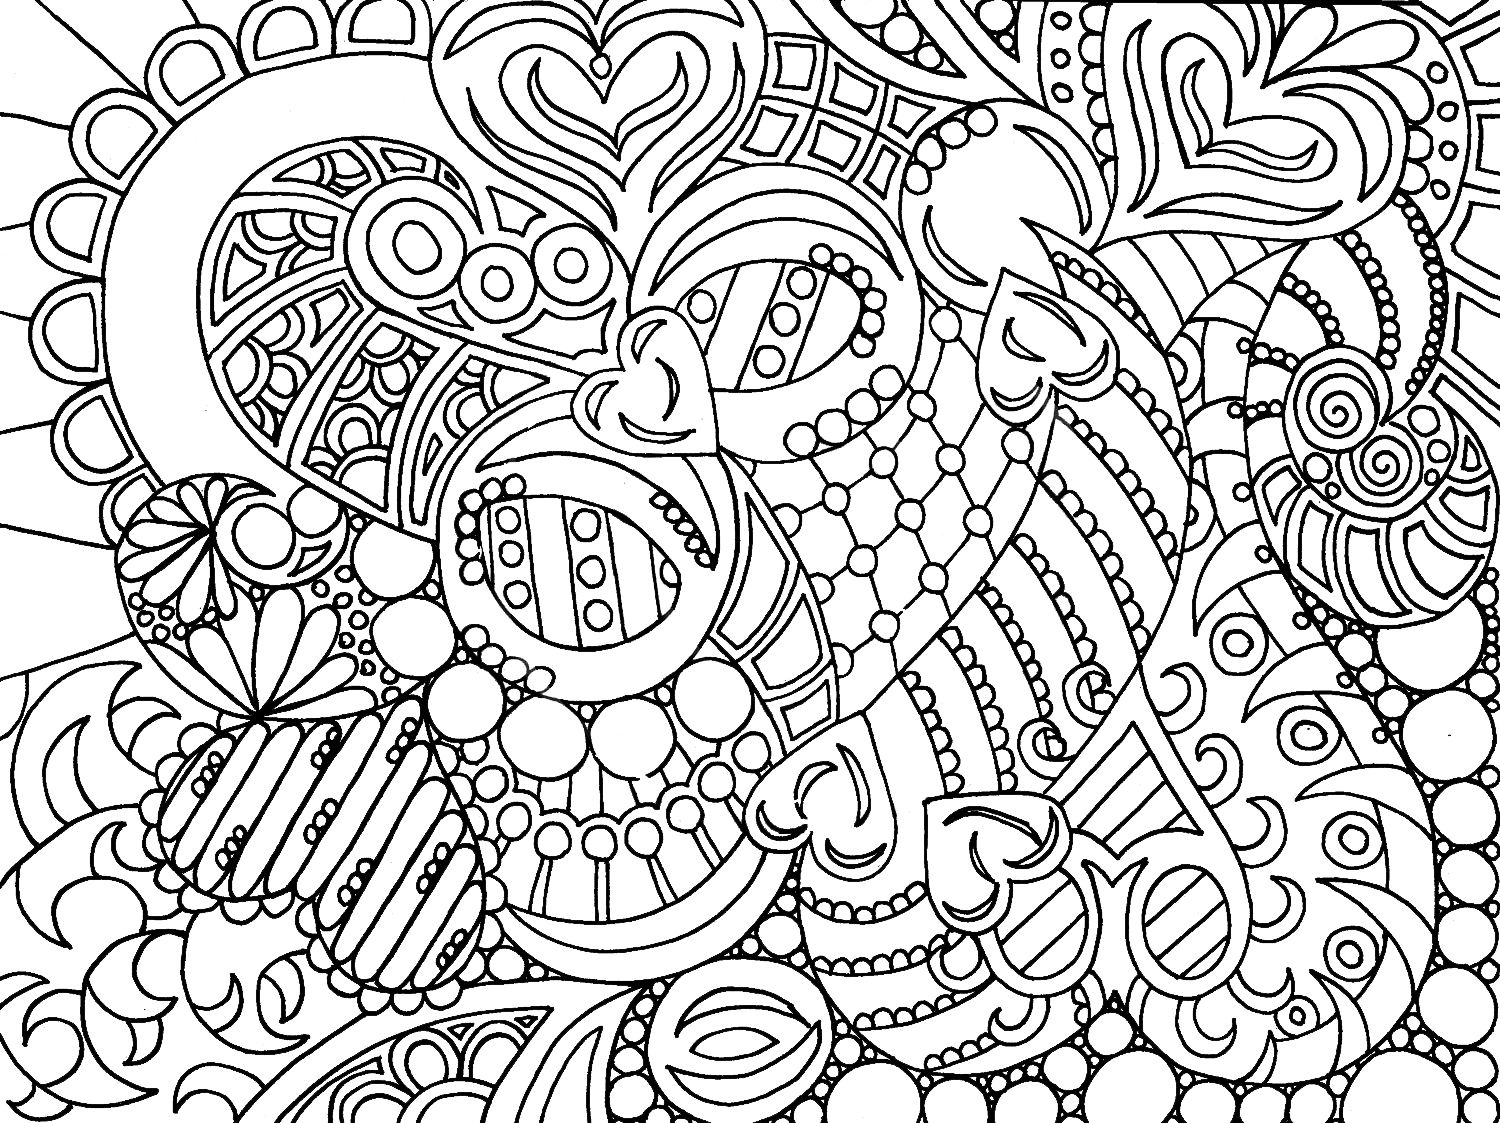 Coloring pictures for adults - Advanced Coloring Pages Adults Coloring Pages Pictures Imagixs